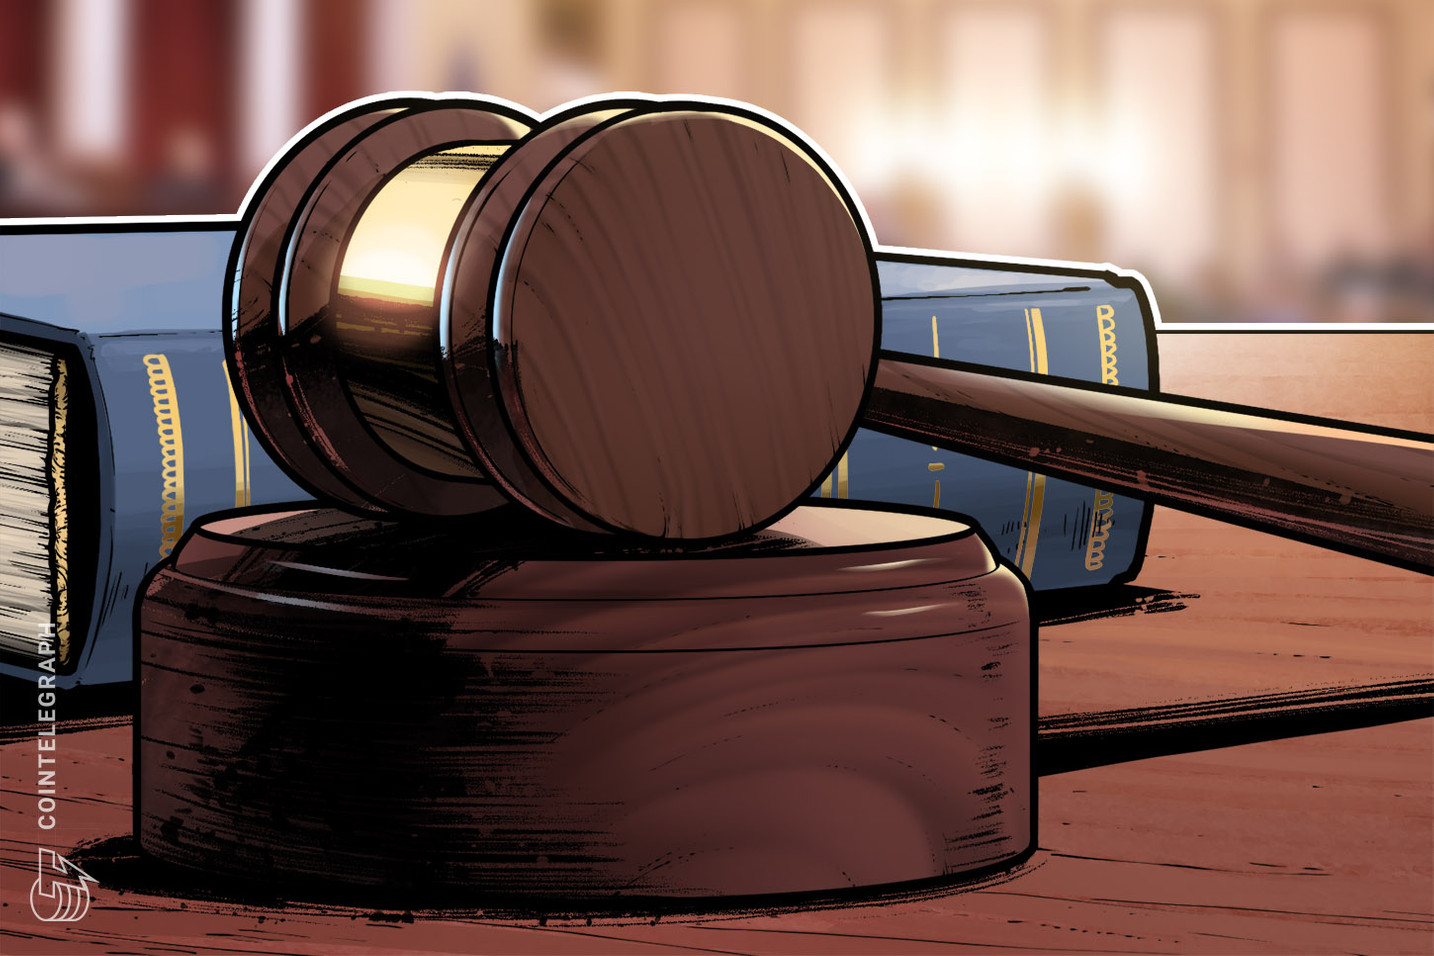 Texas Court Orders Defendants to Pay $400K for Fraudulent Bitcoin Scheme